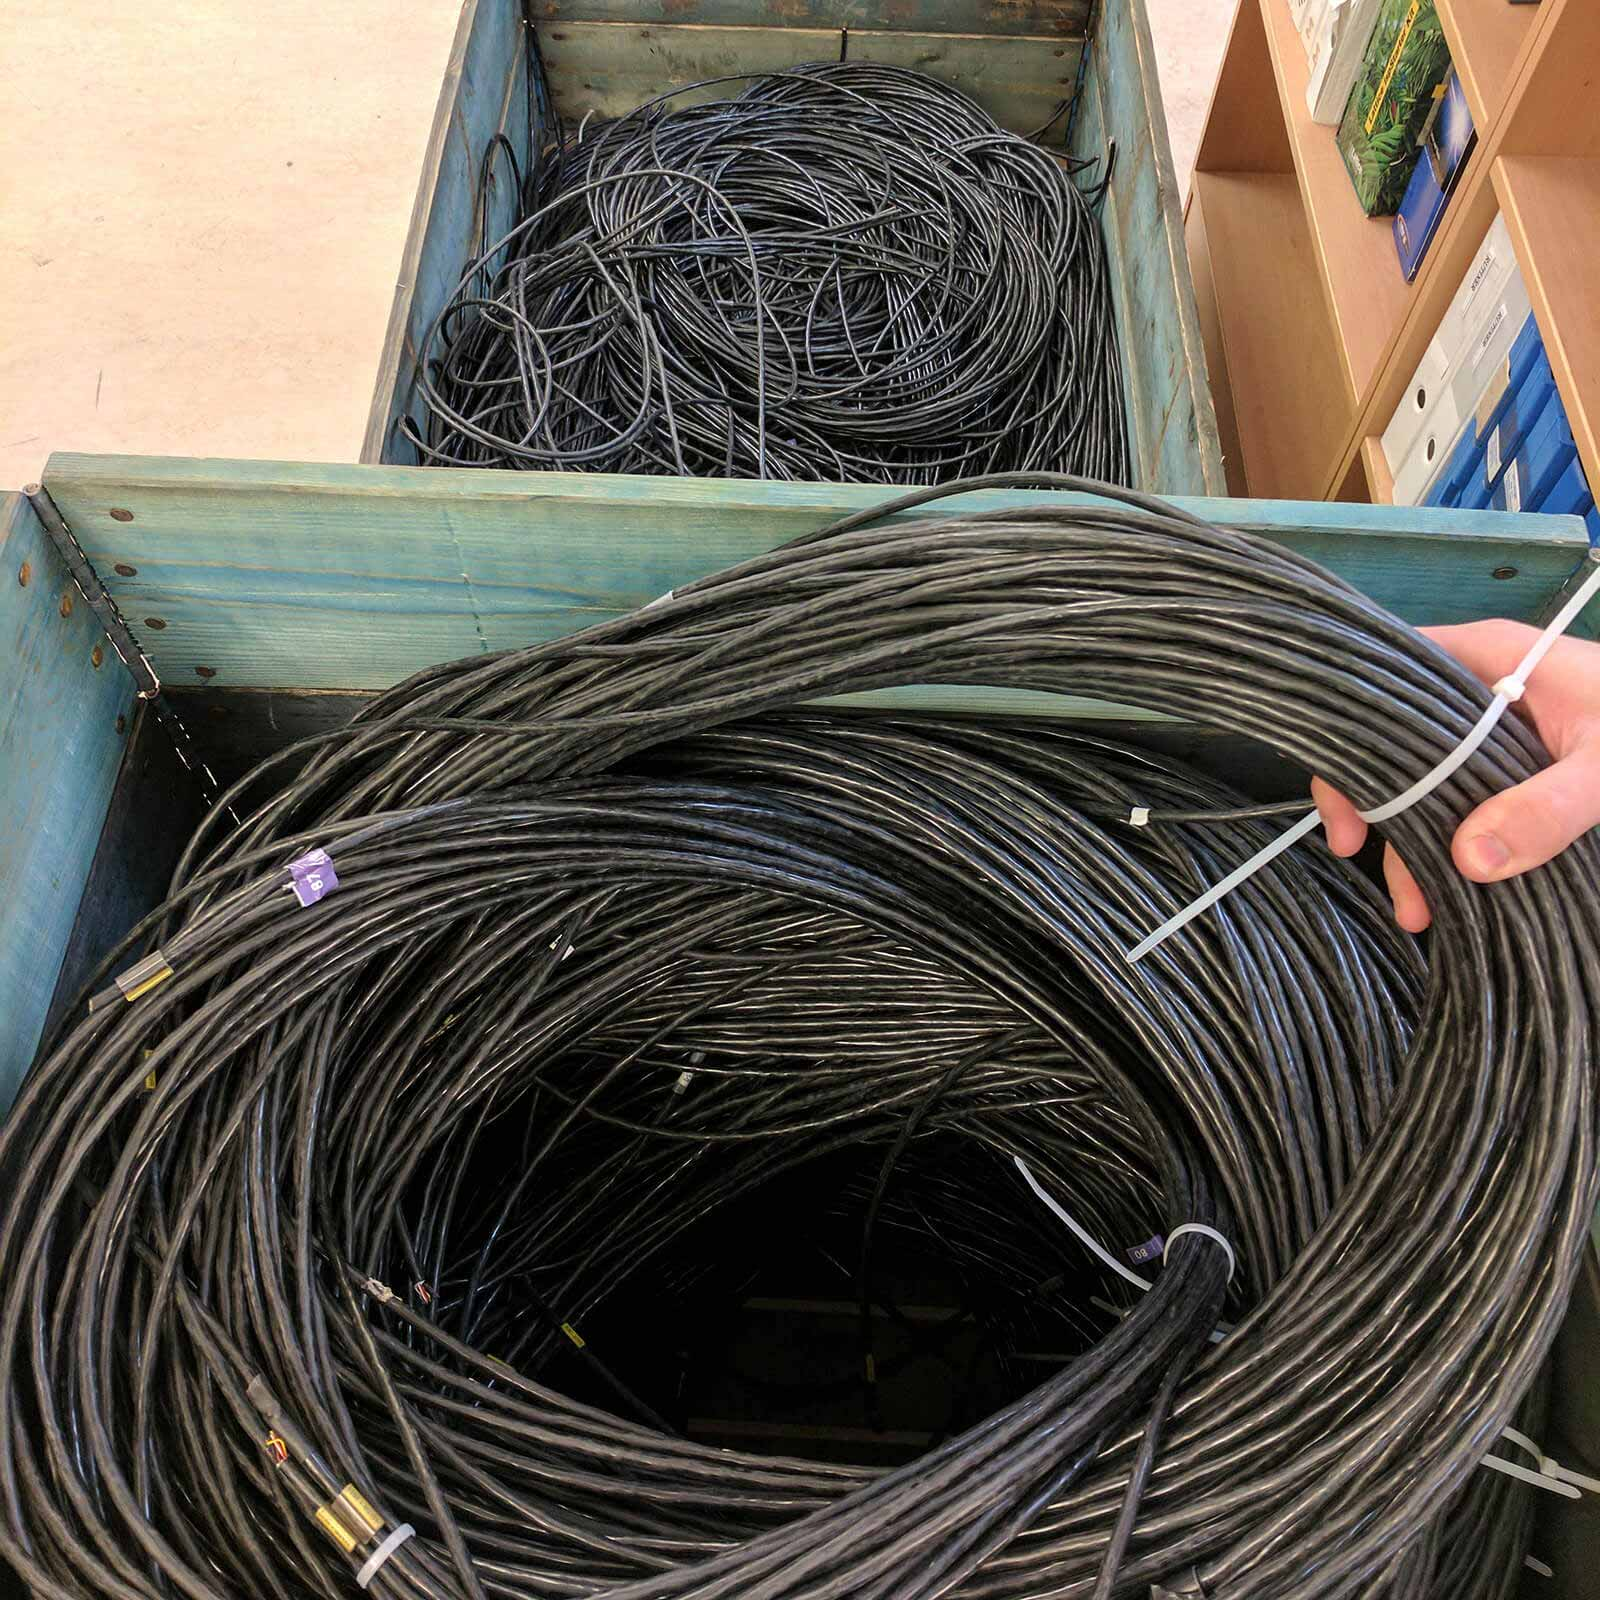 around two kilometers of black cable